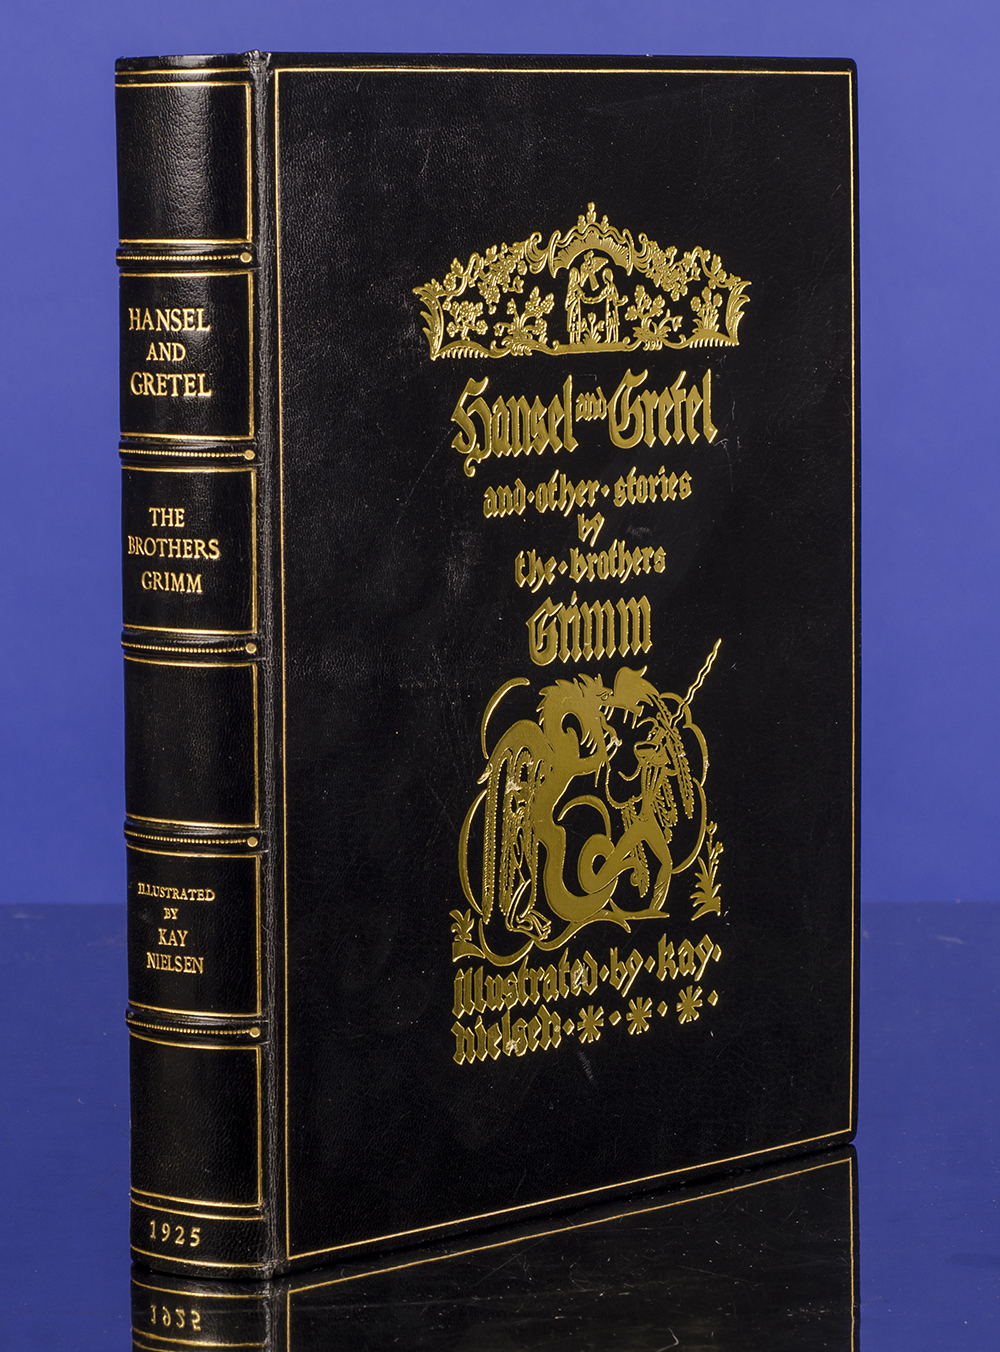 NIELSEN, KAY; GRIMM, JACOB; GRIMM, WILHELM - Hansel and Gretel and Other Stories by the Brothers Grimm